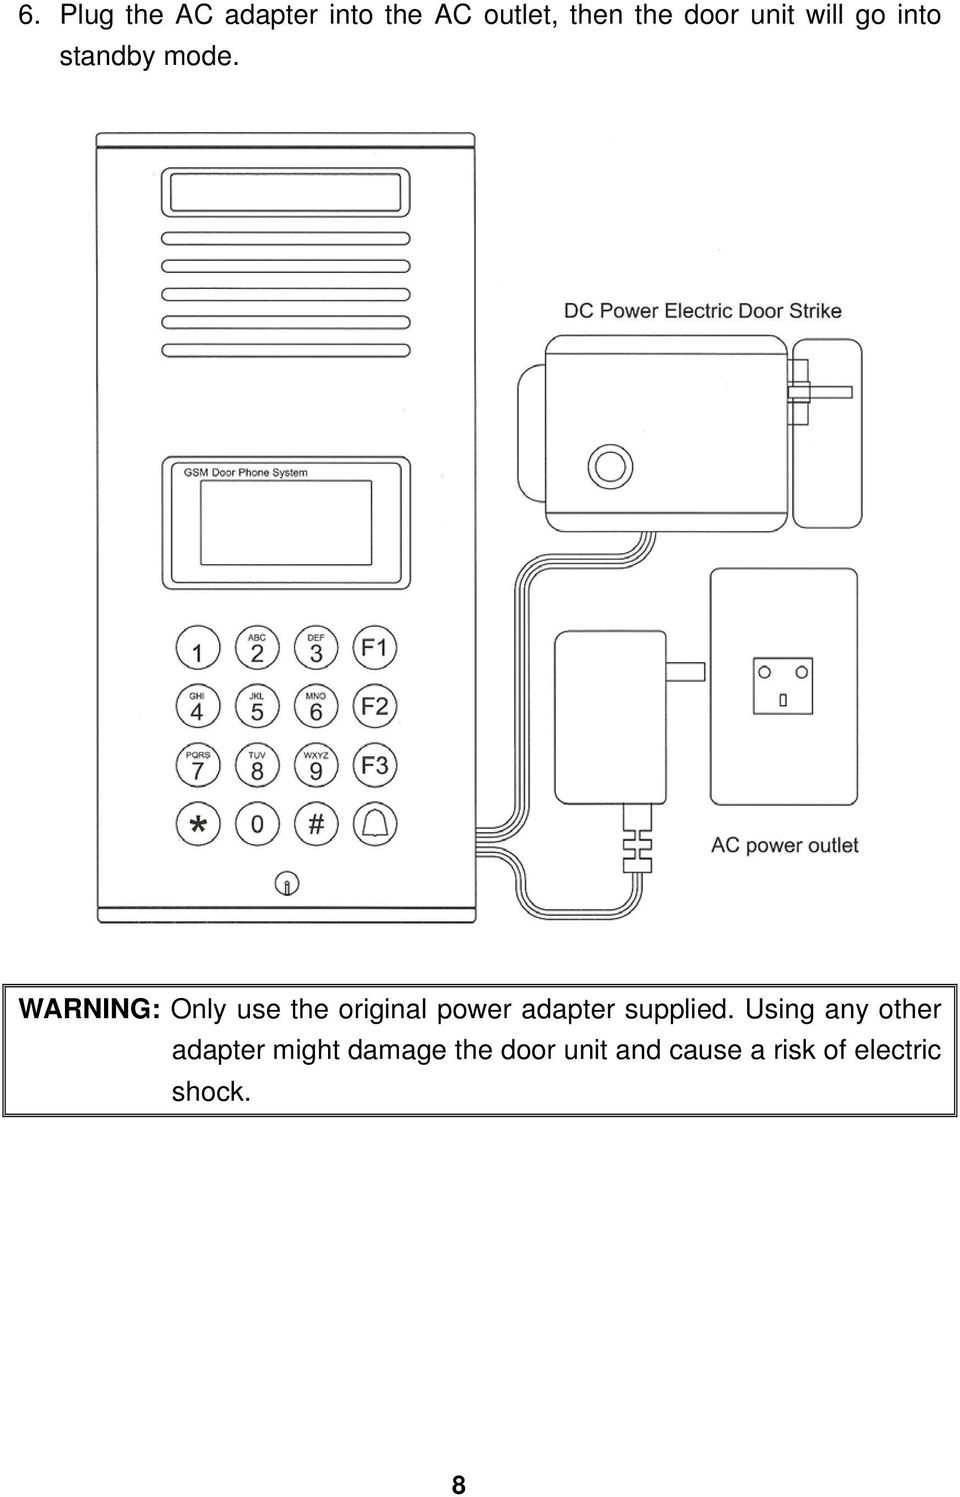 WARNING: Only use the original power adapter supplied.